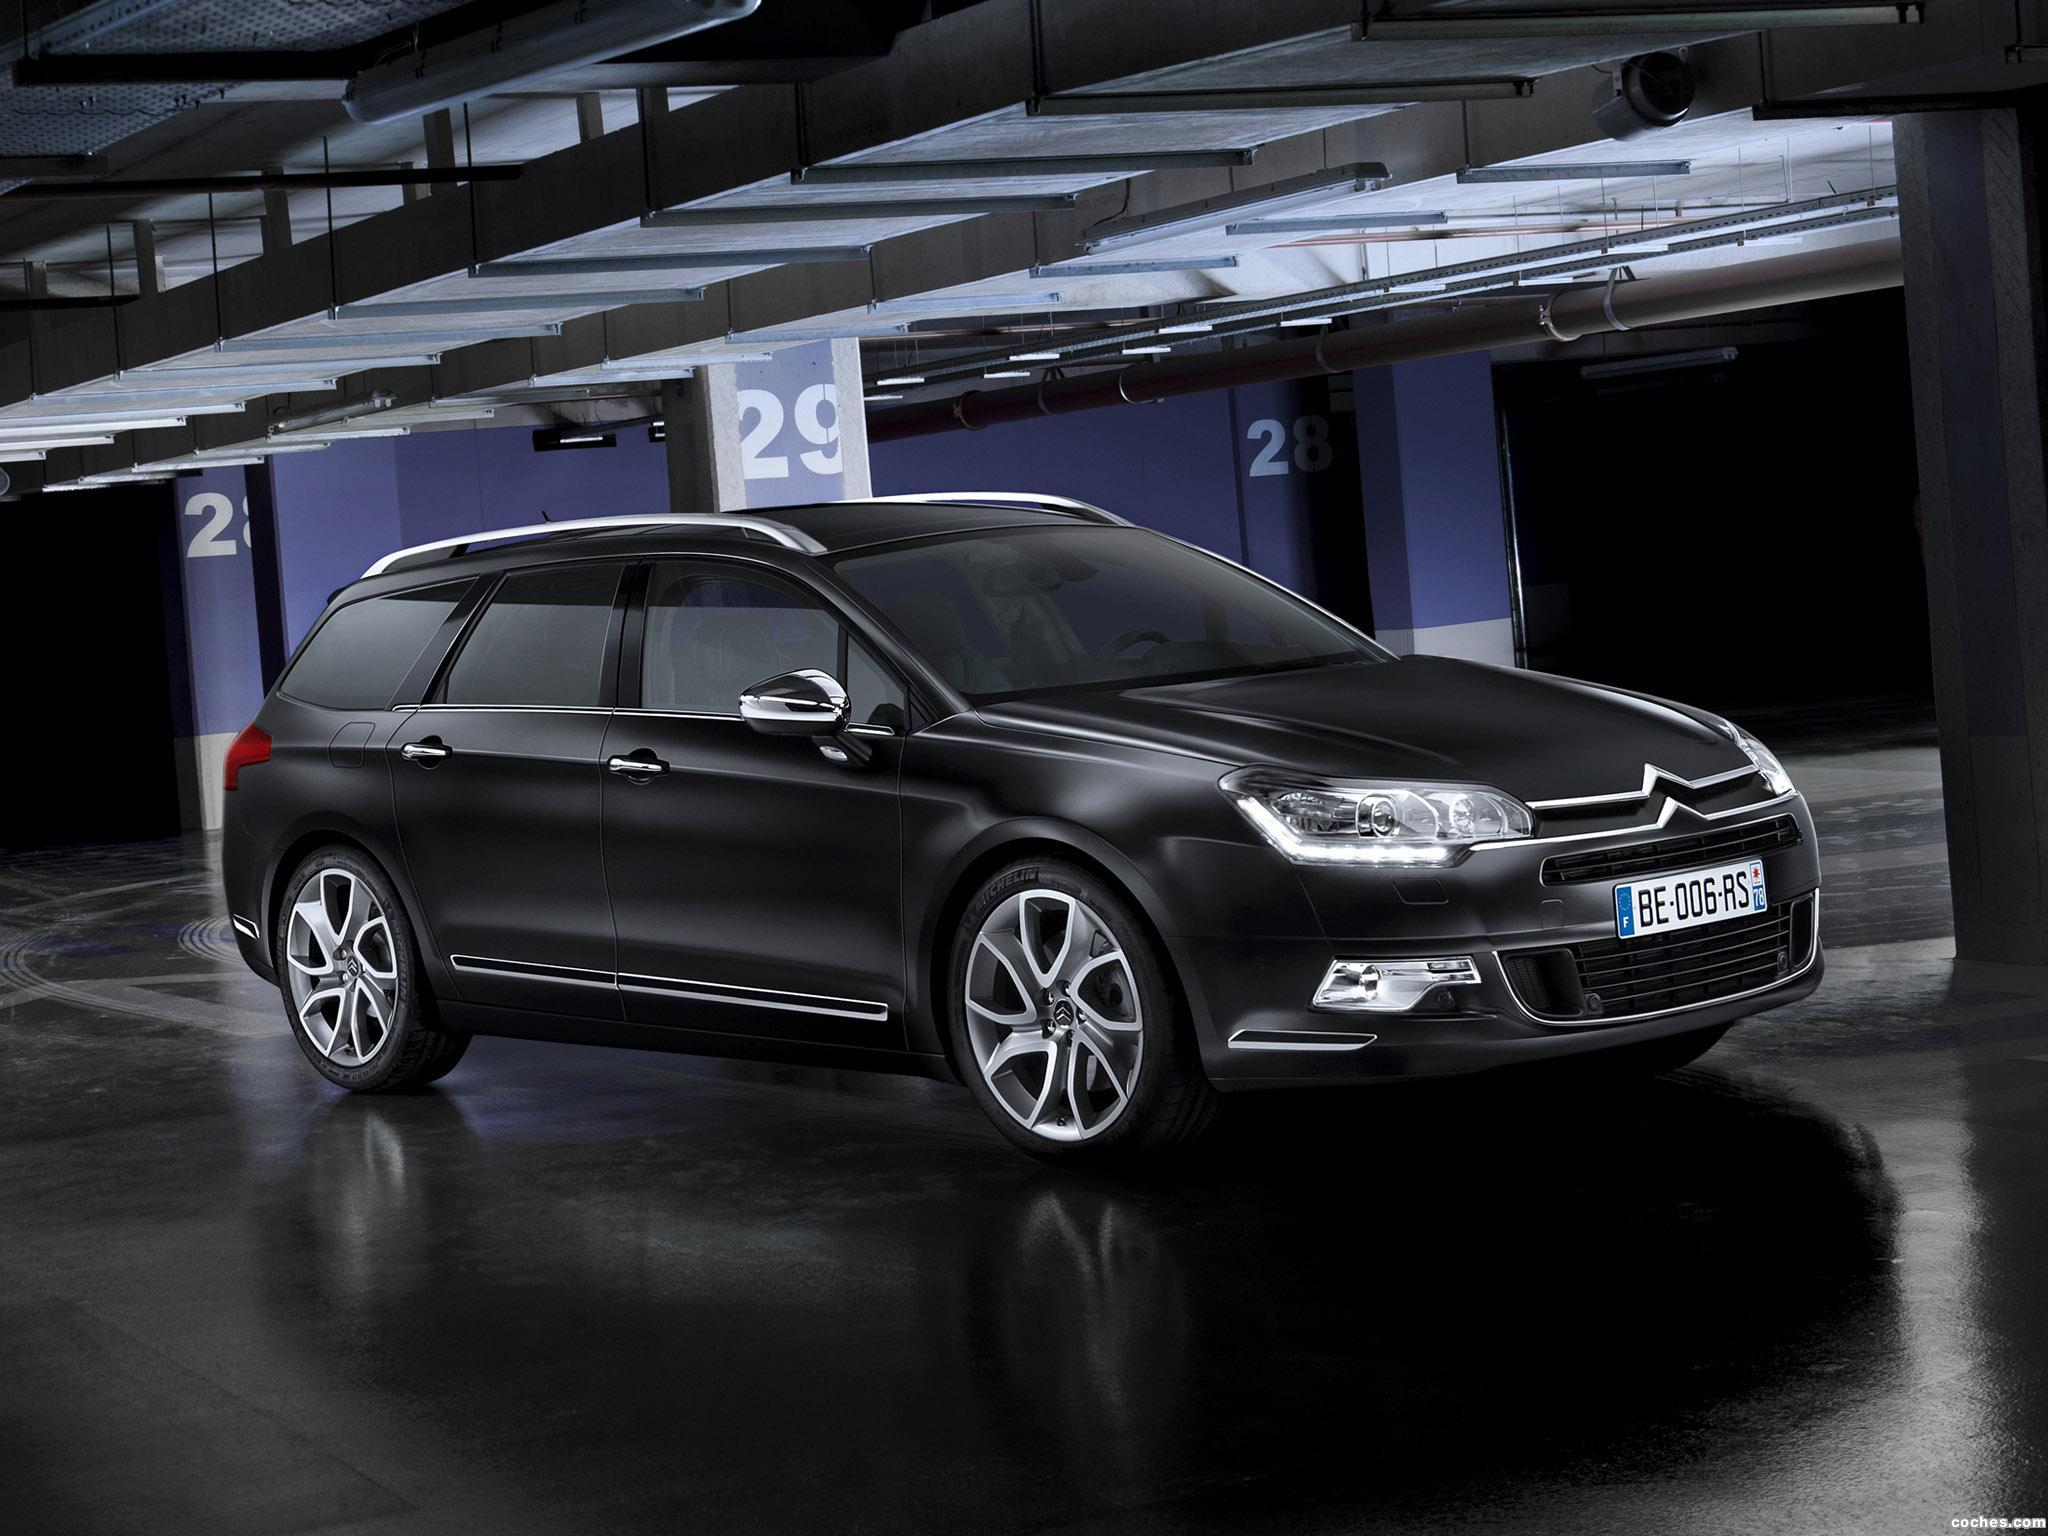 Foto 0 de Citroen C5 Break Serie Noire 2011